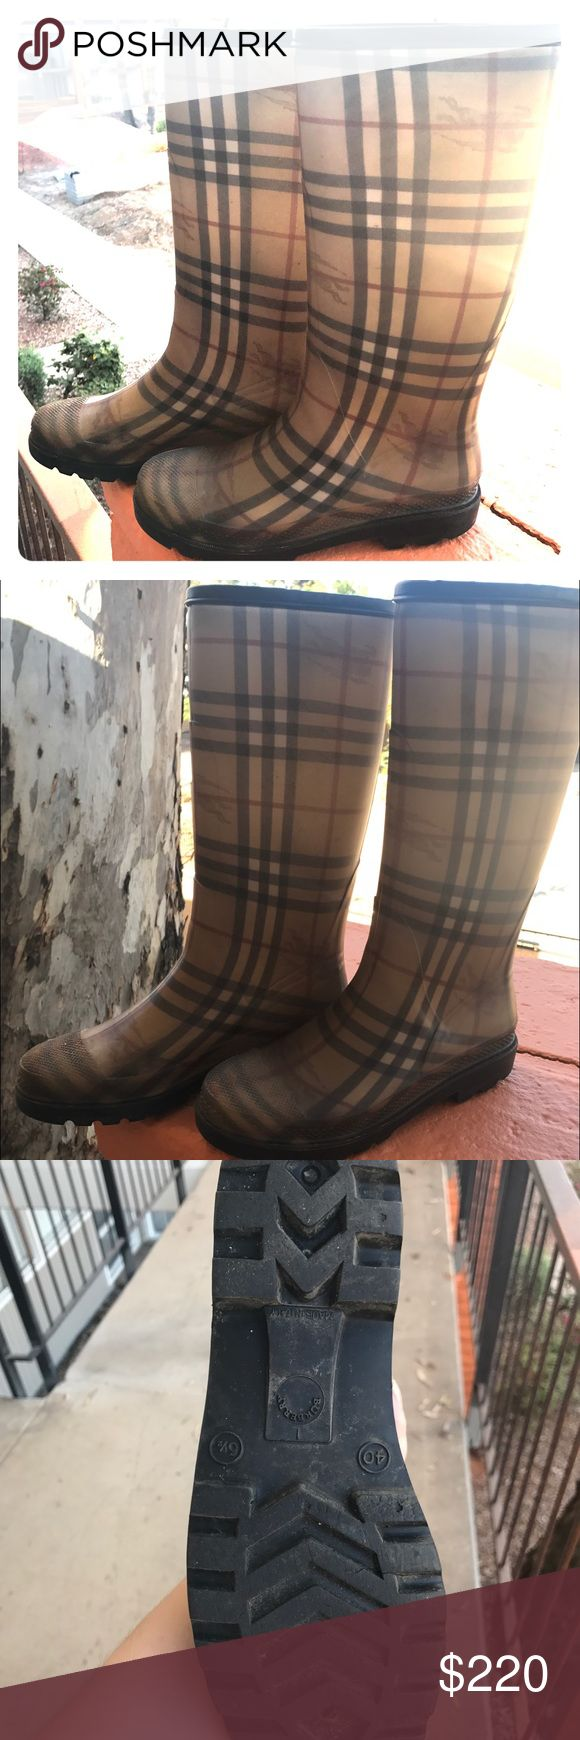 BURBERRY HOUSE CHECK RAIN BOOTS Tan Burberry round-toe rain boots with House check print throughout and block heels. Small calf. Heels: 1 inch. Burberry Shoes Winter & Rain Boots